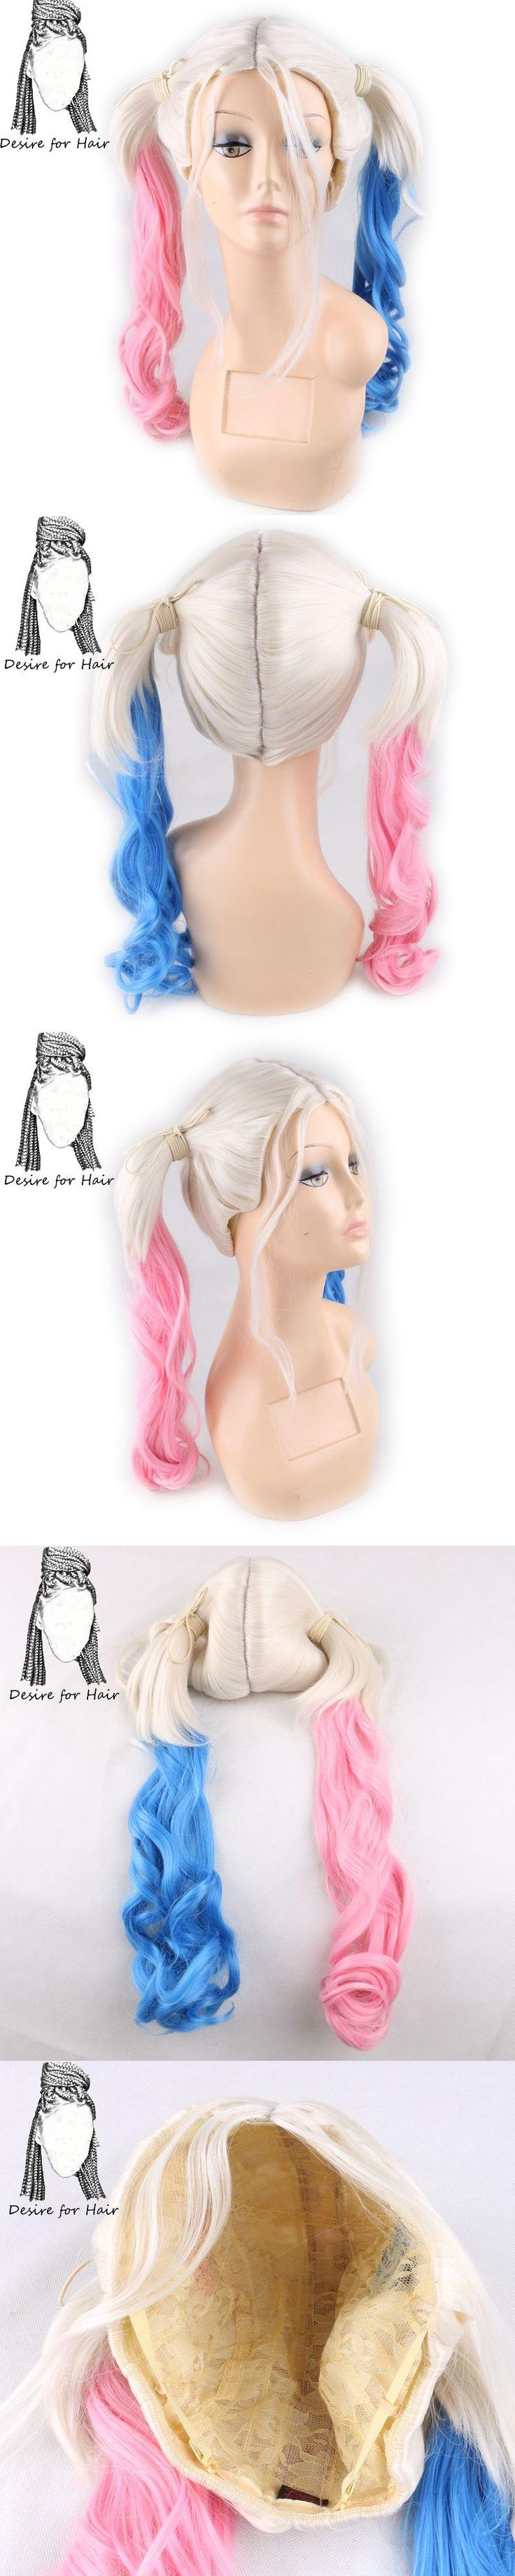 Desire for hair 40cm long pink and blue color wavy double ponytail high tempreture synthetic fiber movie cosplay wig for party